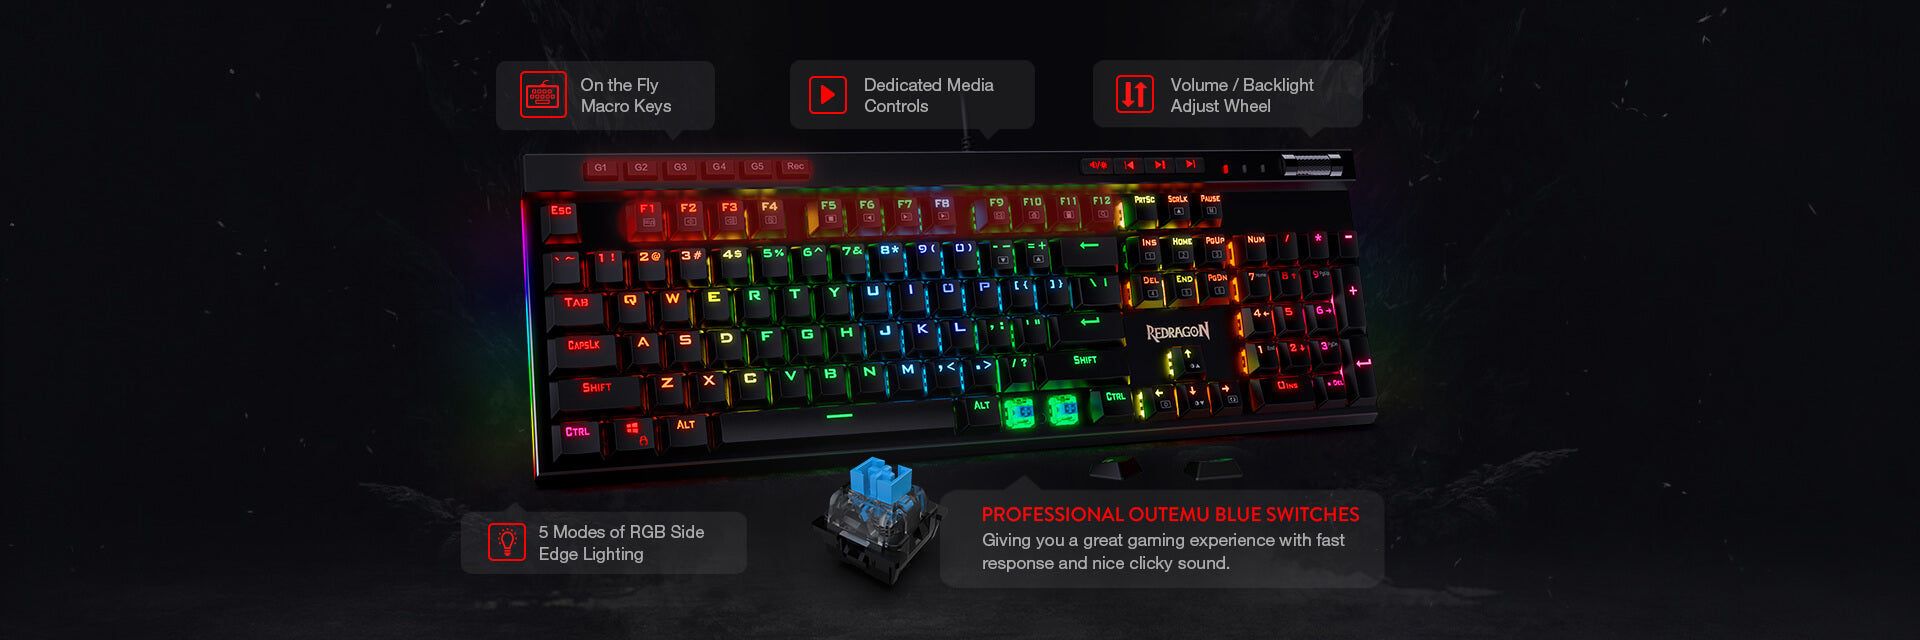 redragon k580 vata review